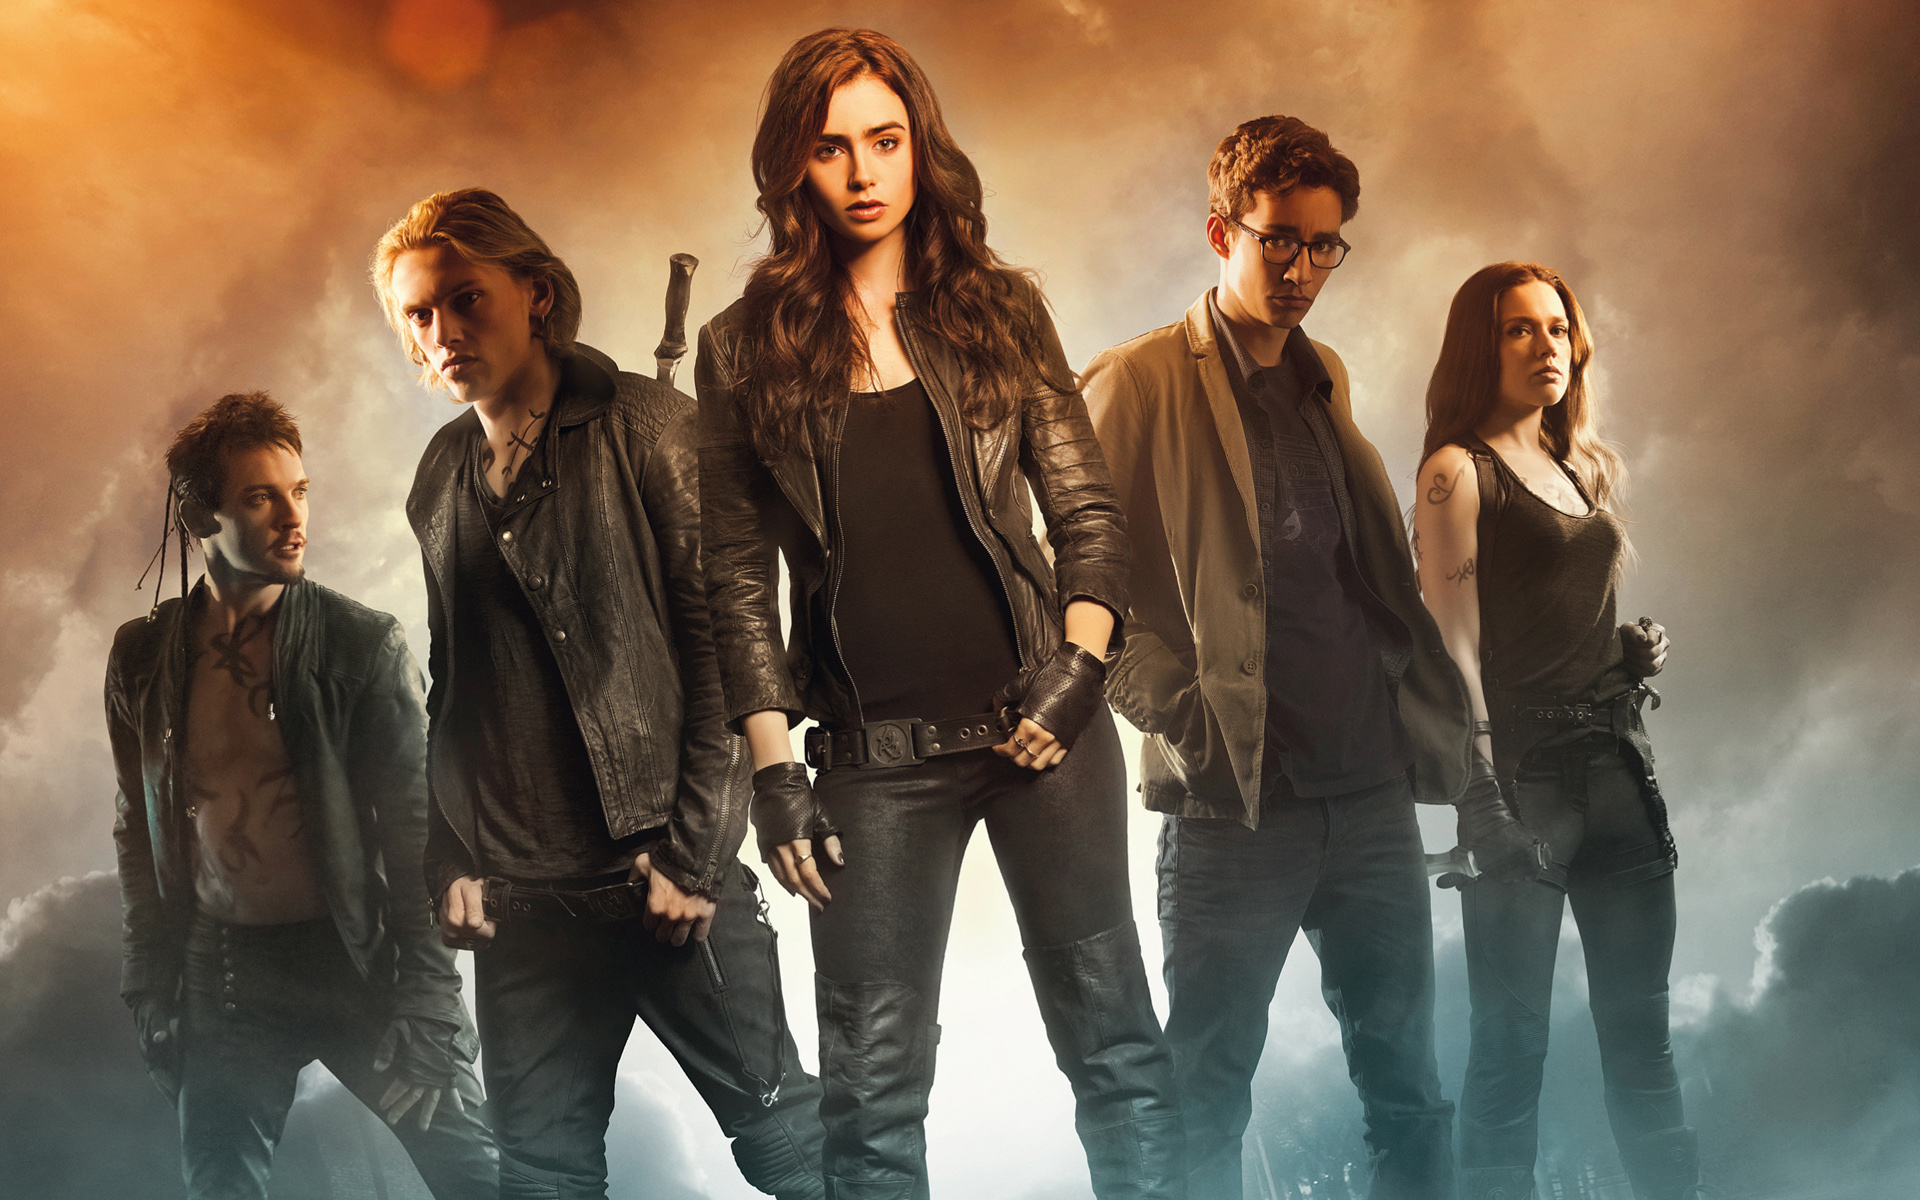 HD Wallpapers The Mortal Instruments City of Bones Movie